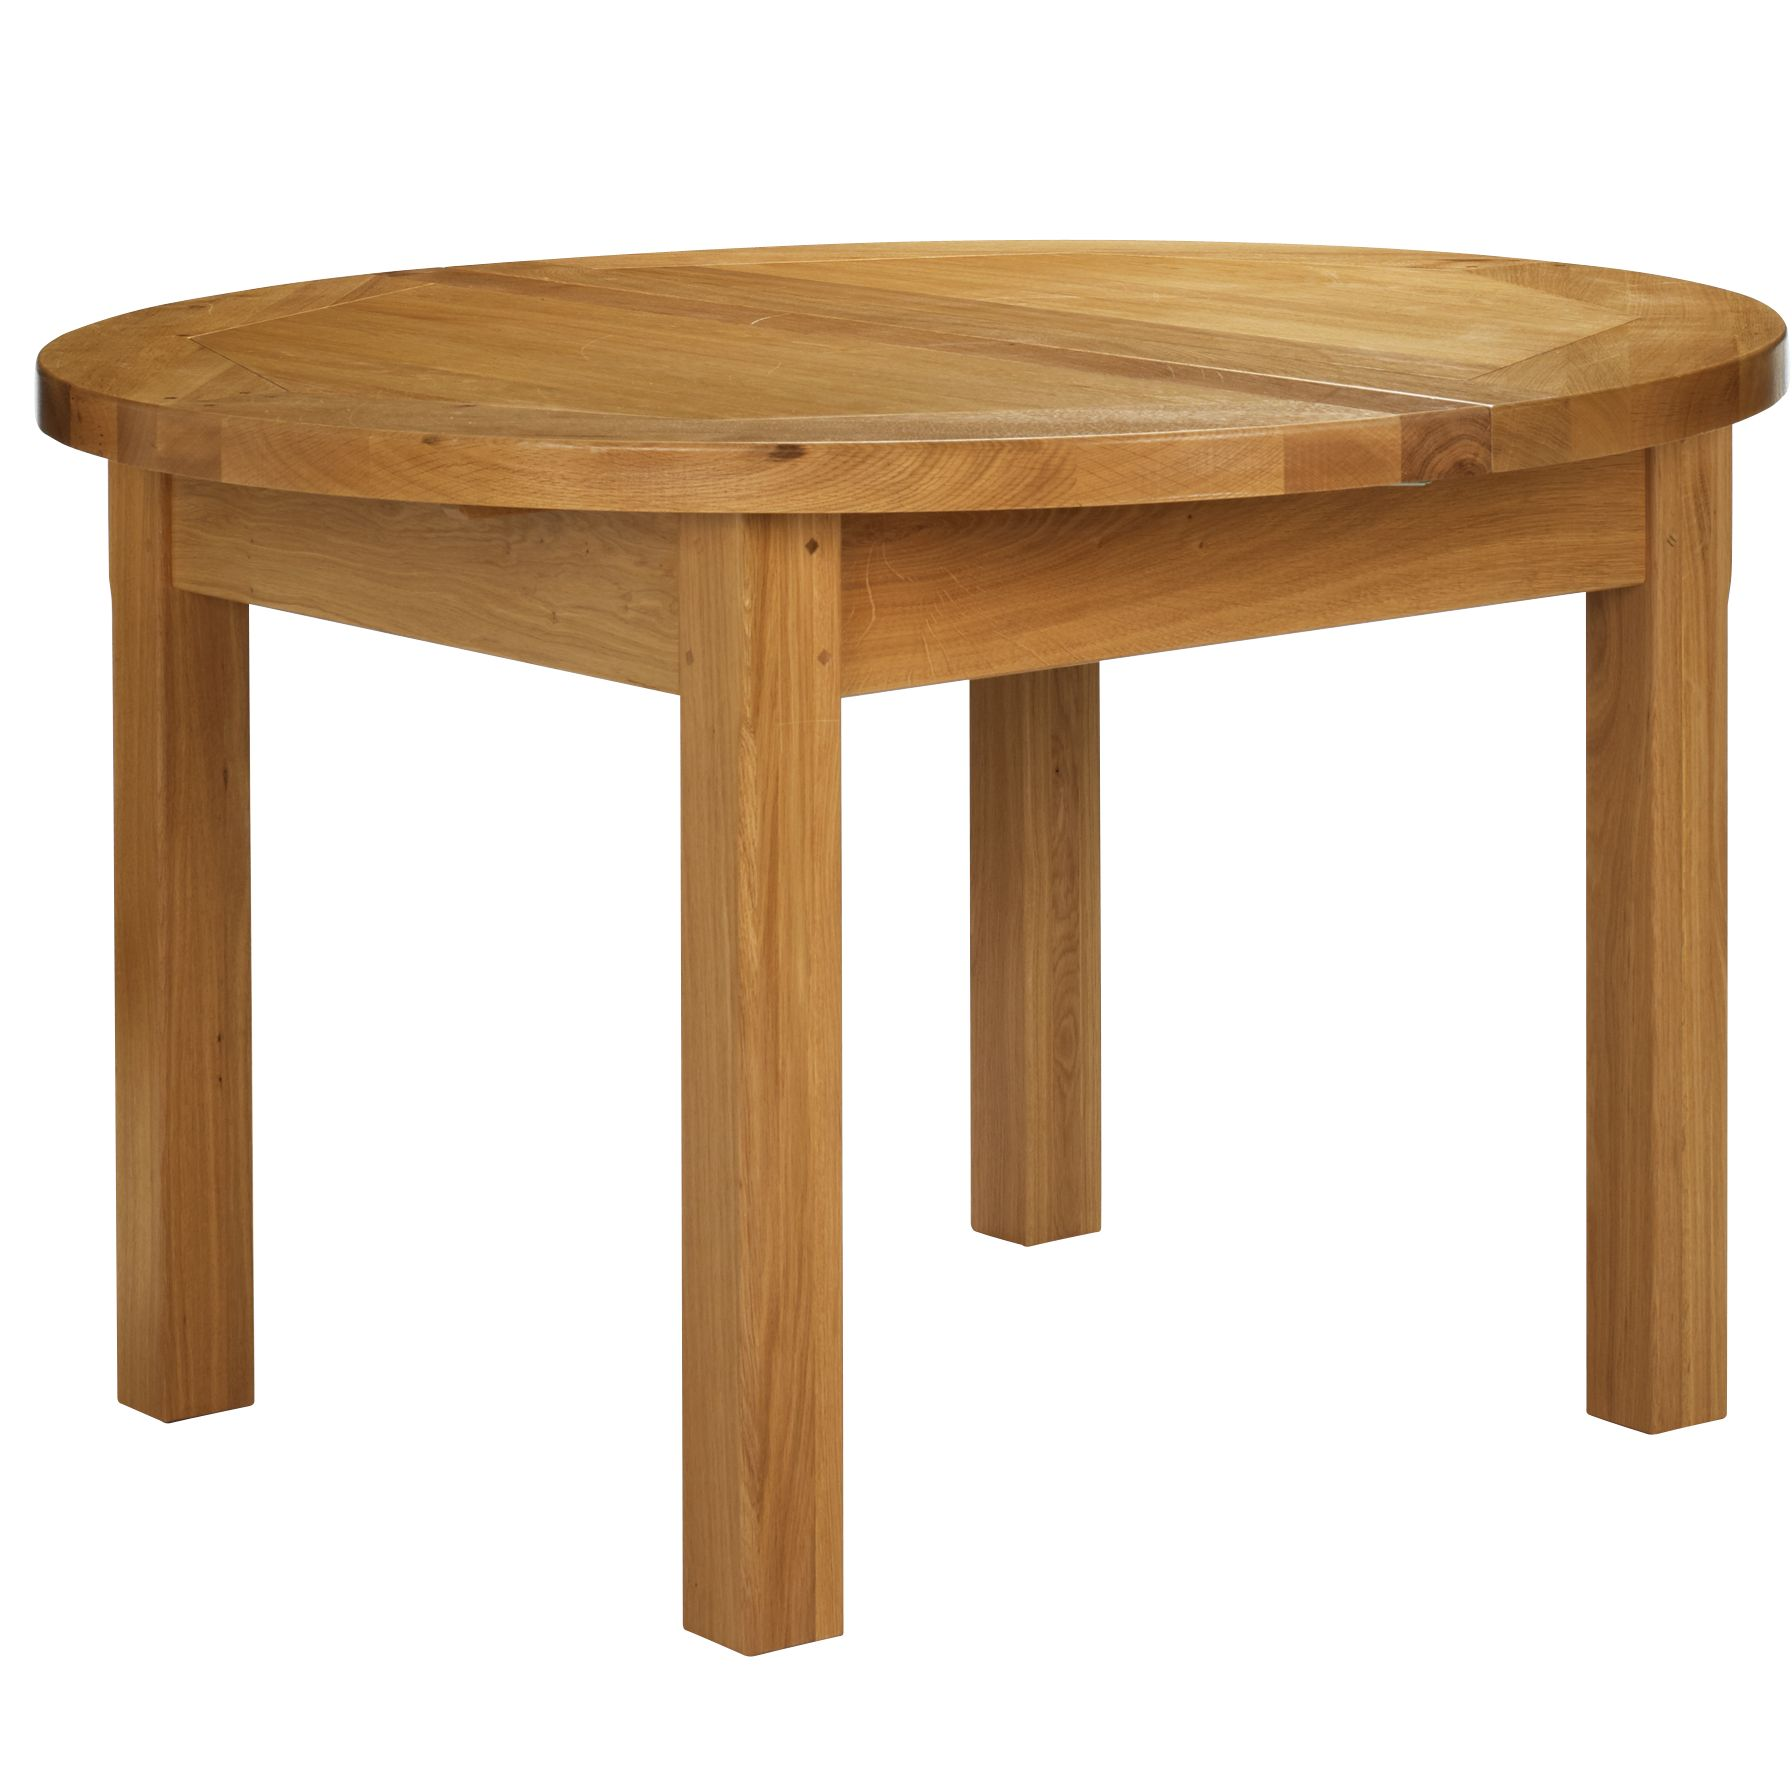 Dining Tables Oak Dining Table Extending Round Pedestal Toul